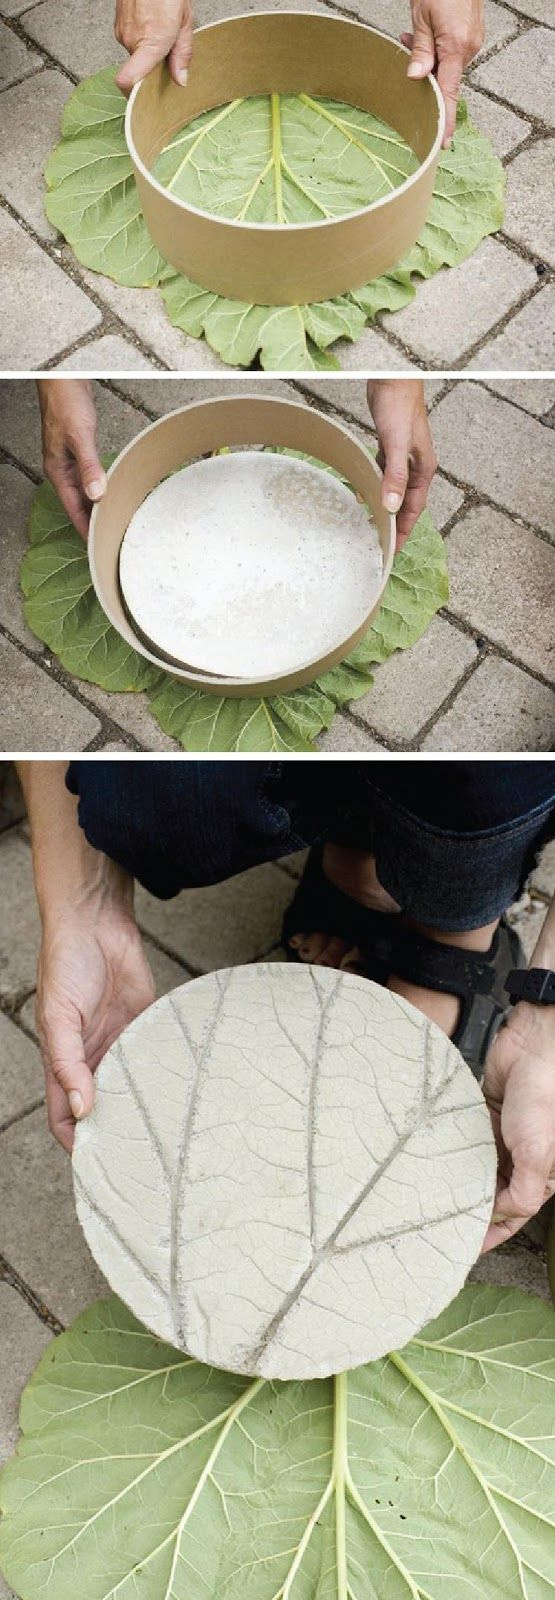 DIY Garden Stone| Since it is fall... it could be cool to use autumn leaves that have fallen off the trees. Mais